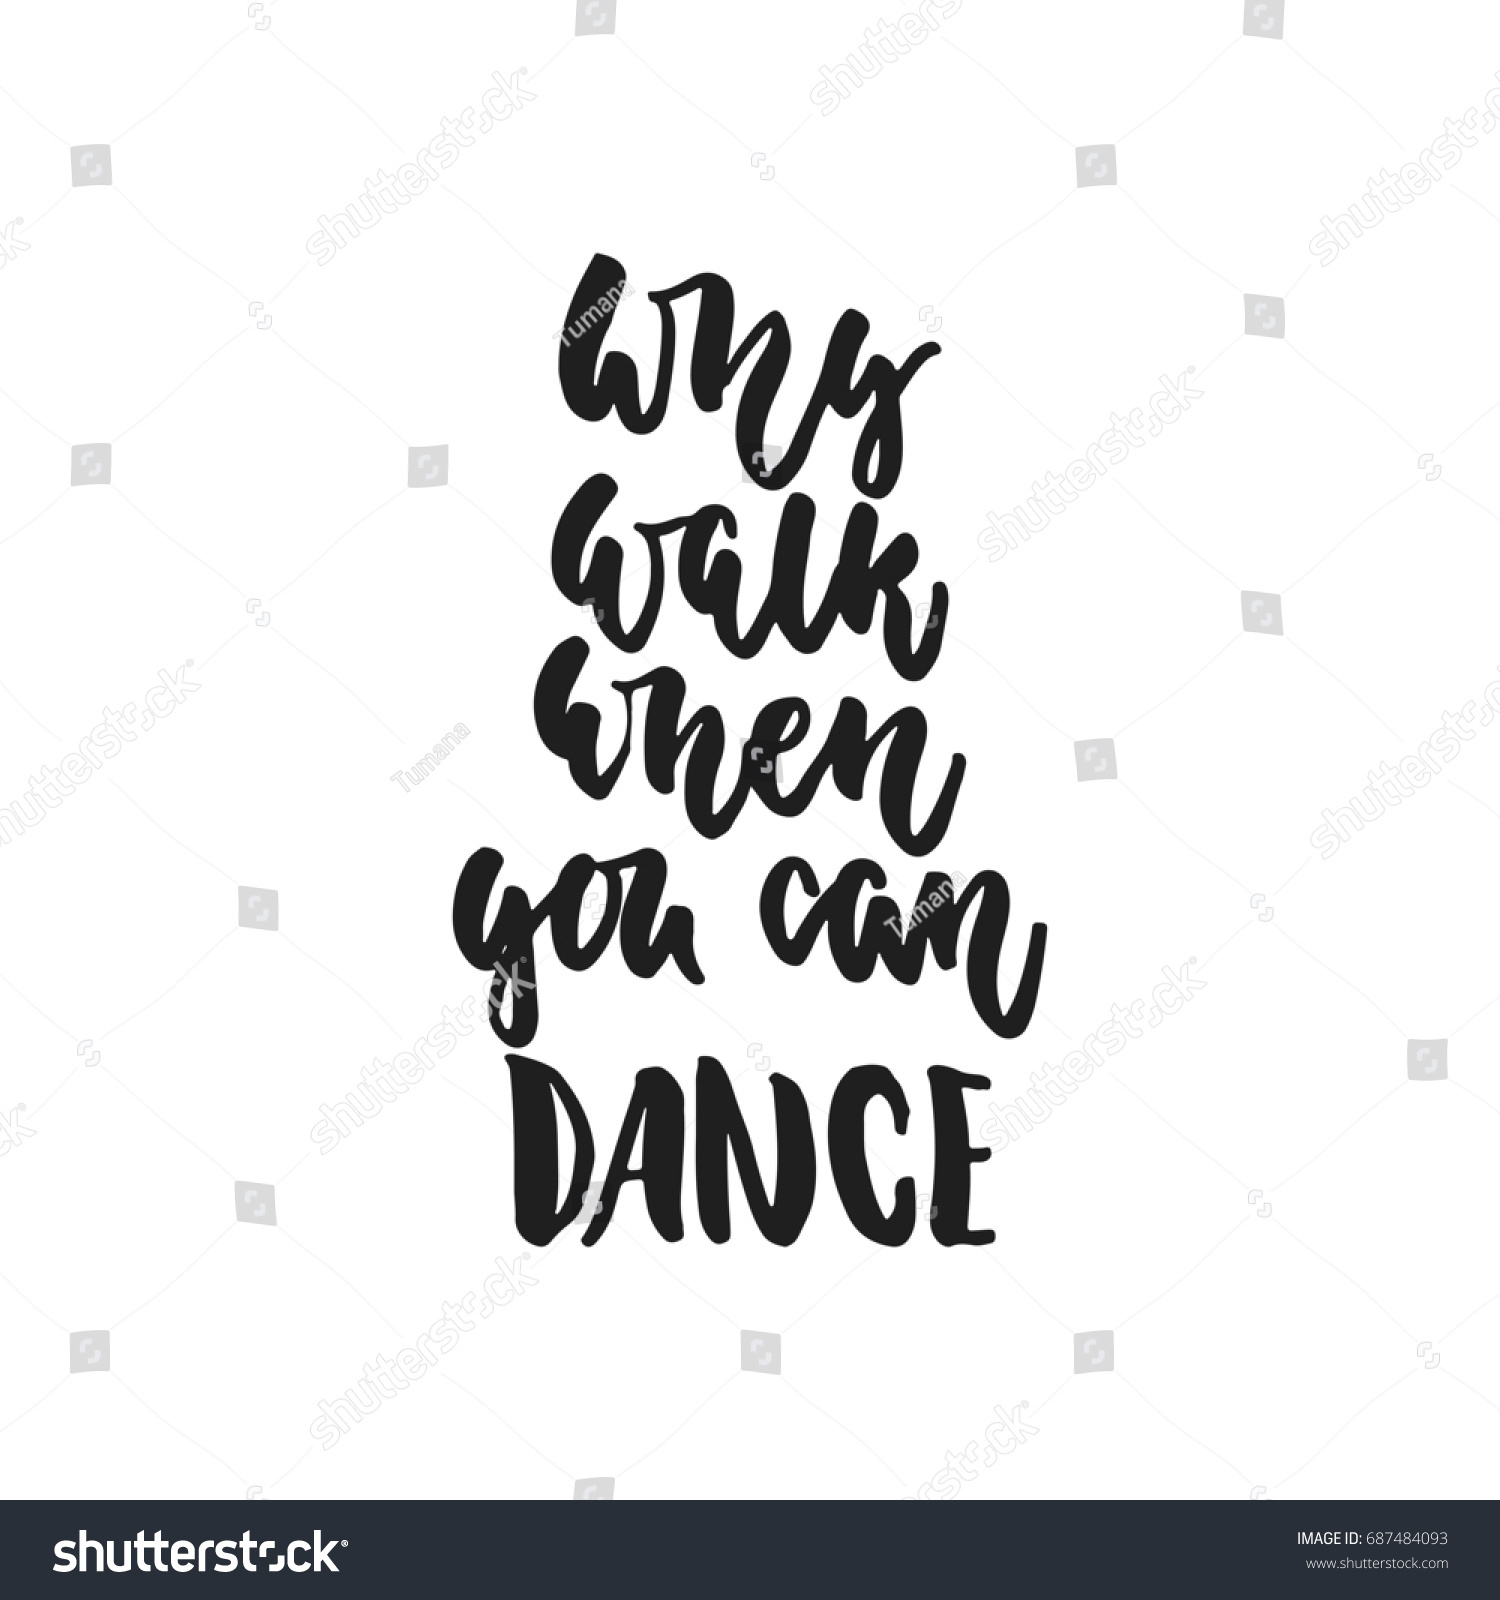 Why Walk When You Can Dance Stock Illustration 687484093 Shutterstock